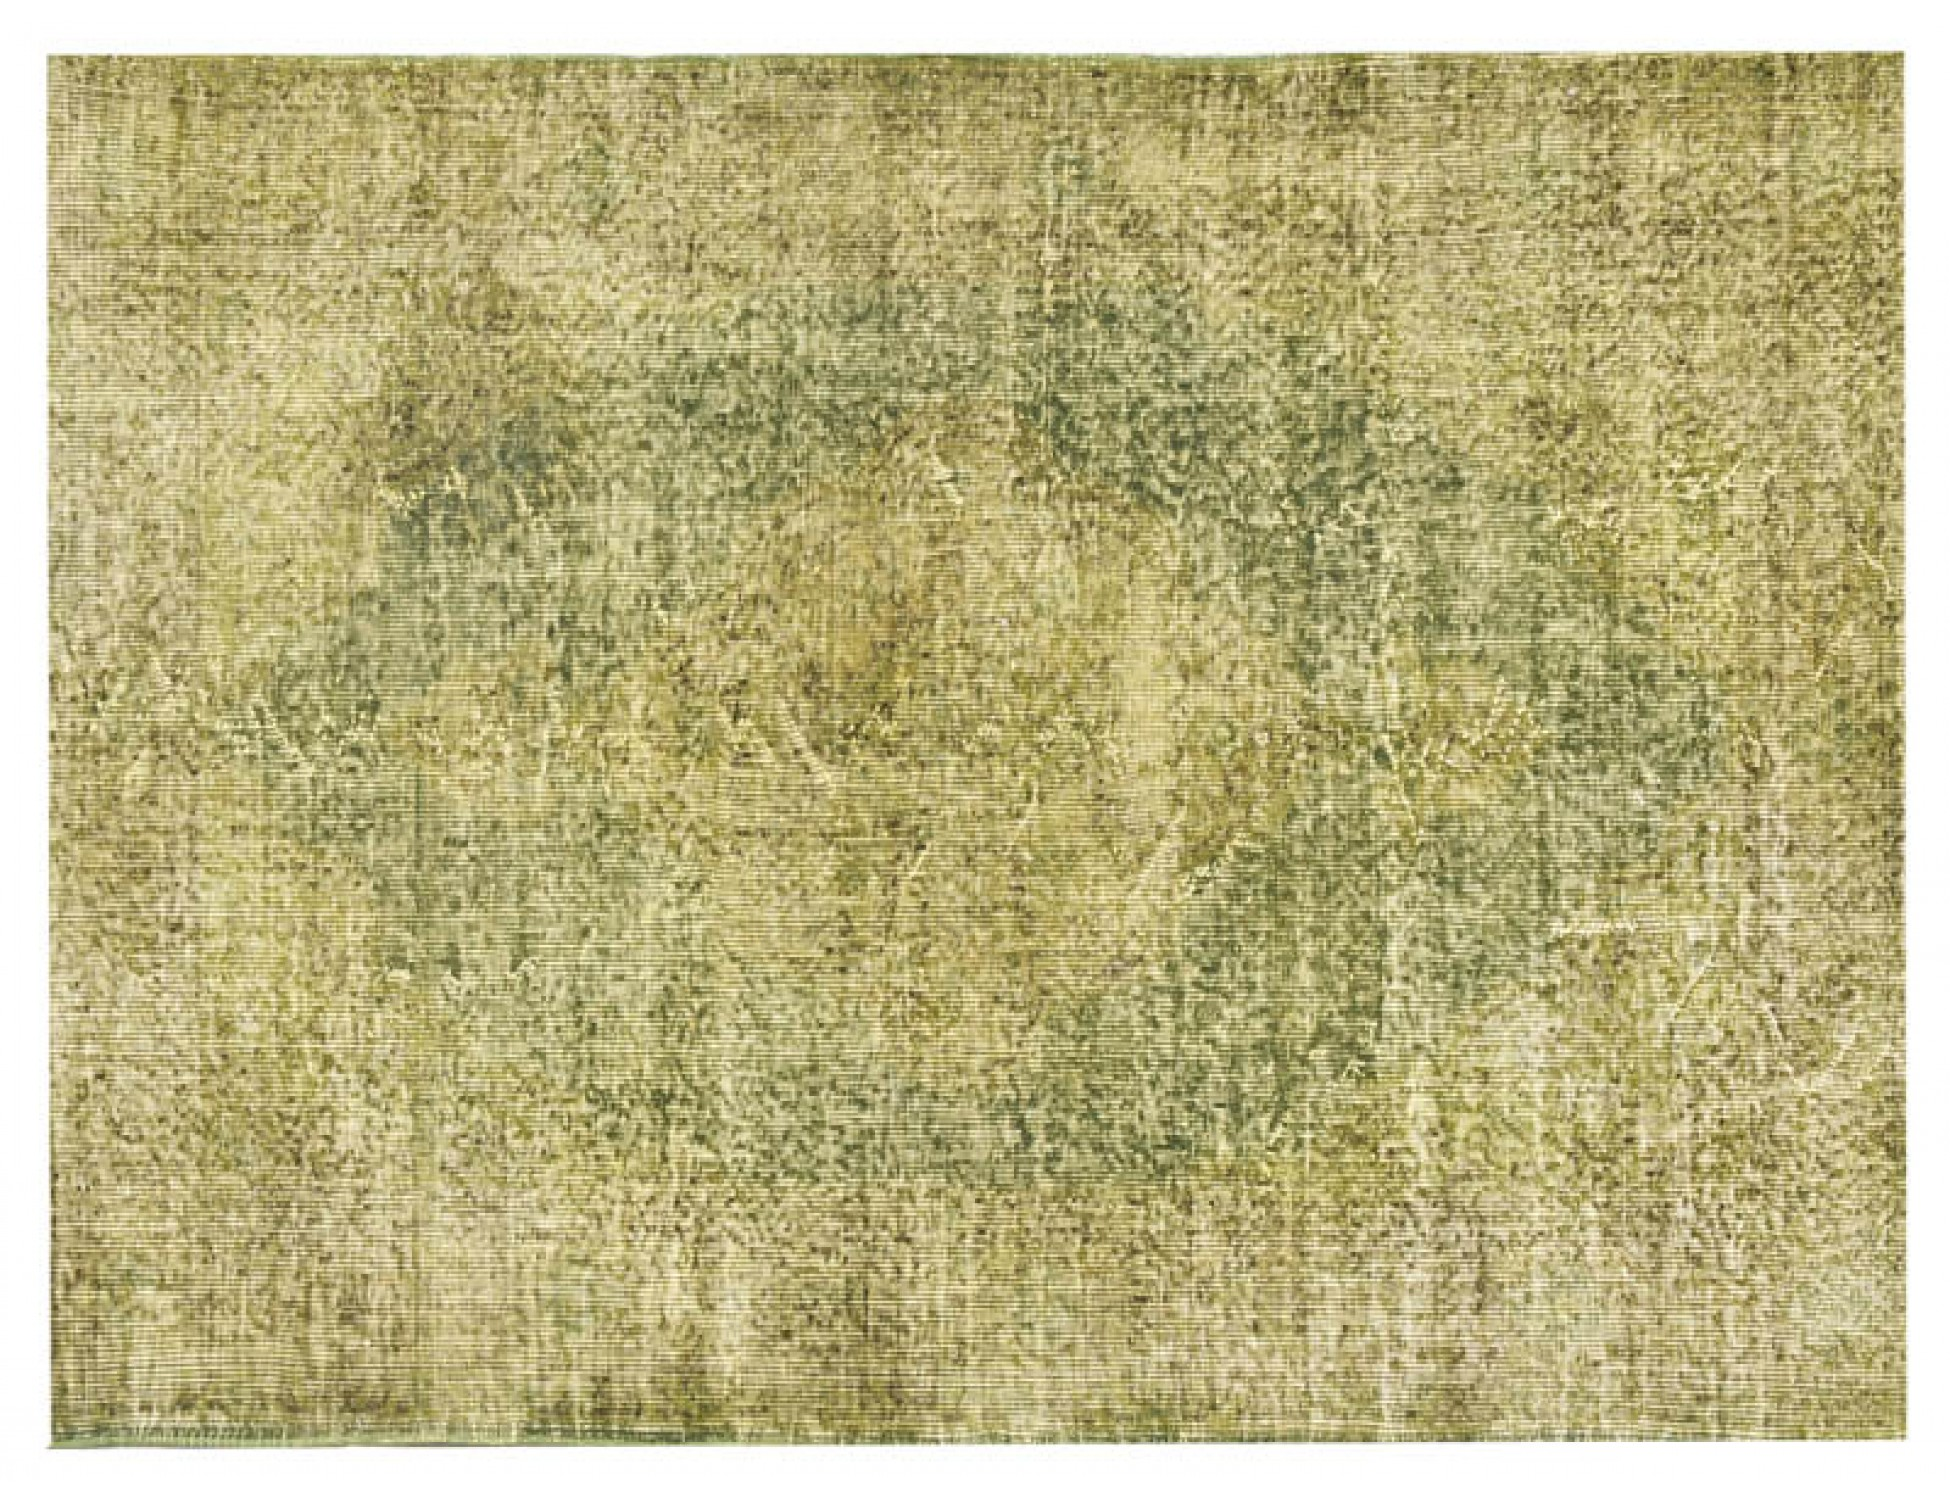 Vintage Carpet  green <br/>201 x 111 cm